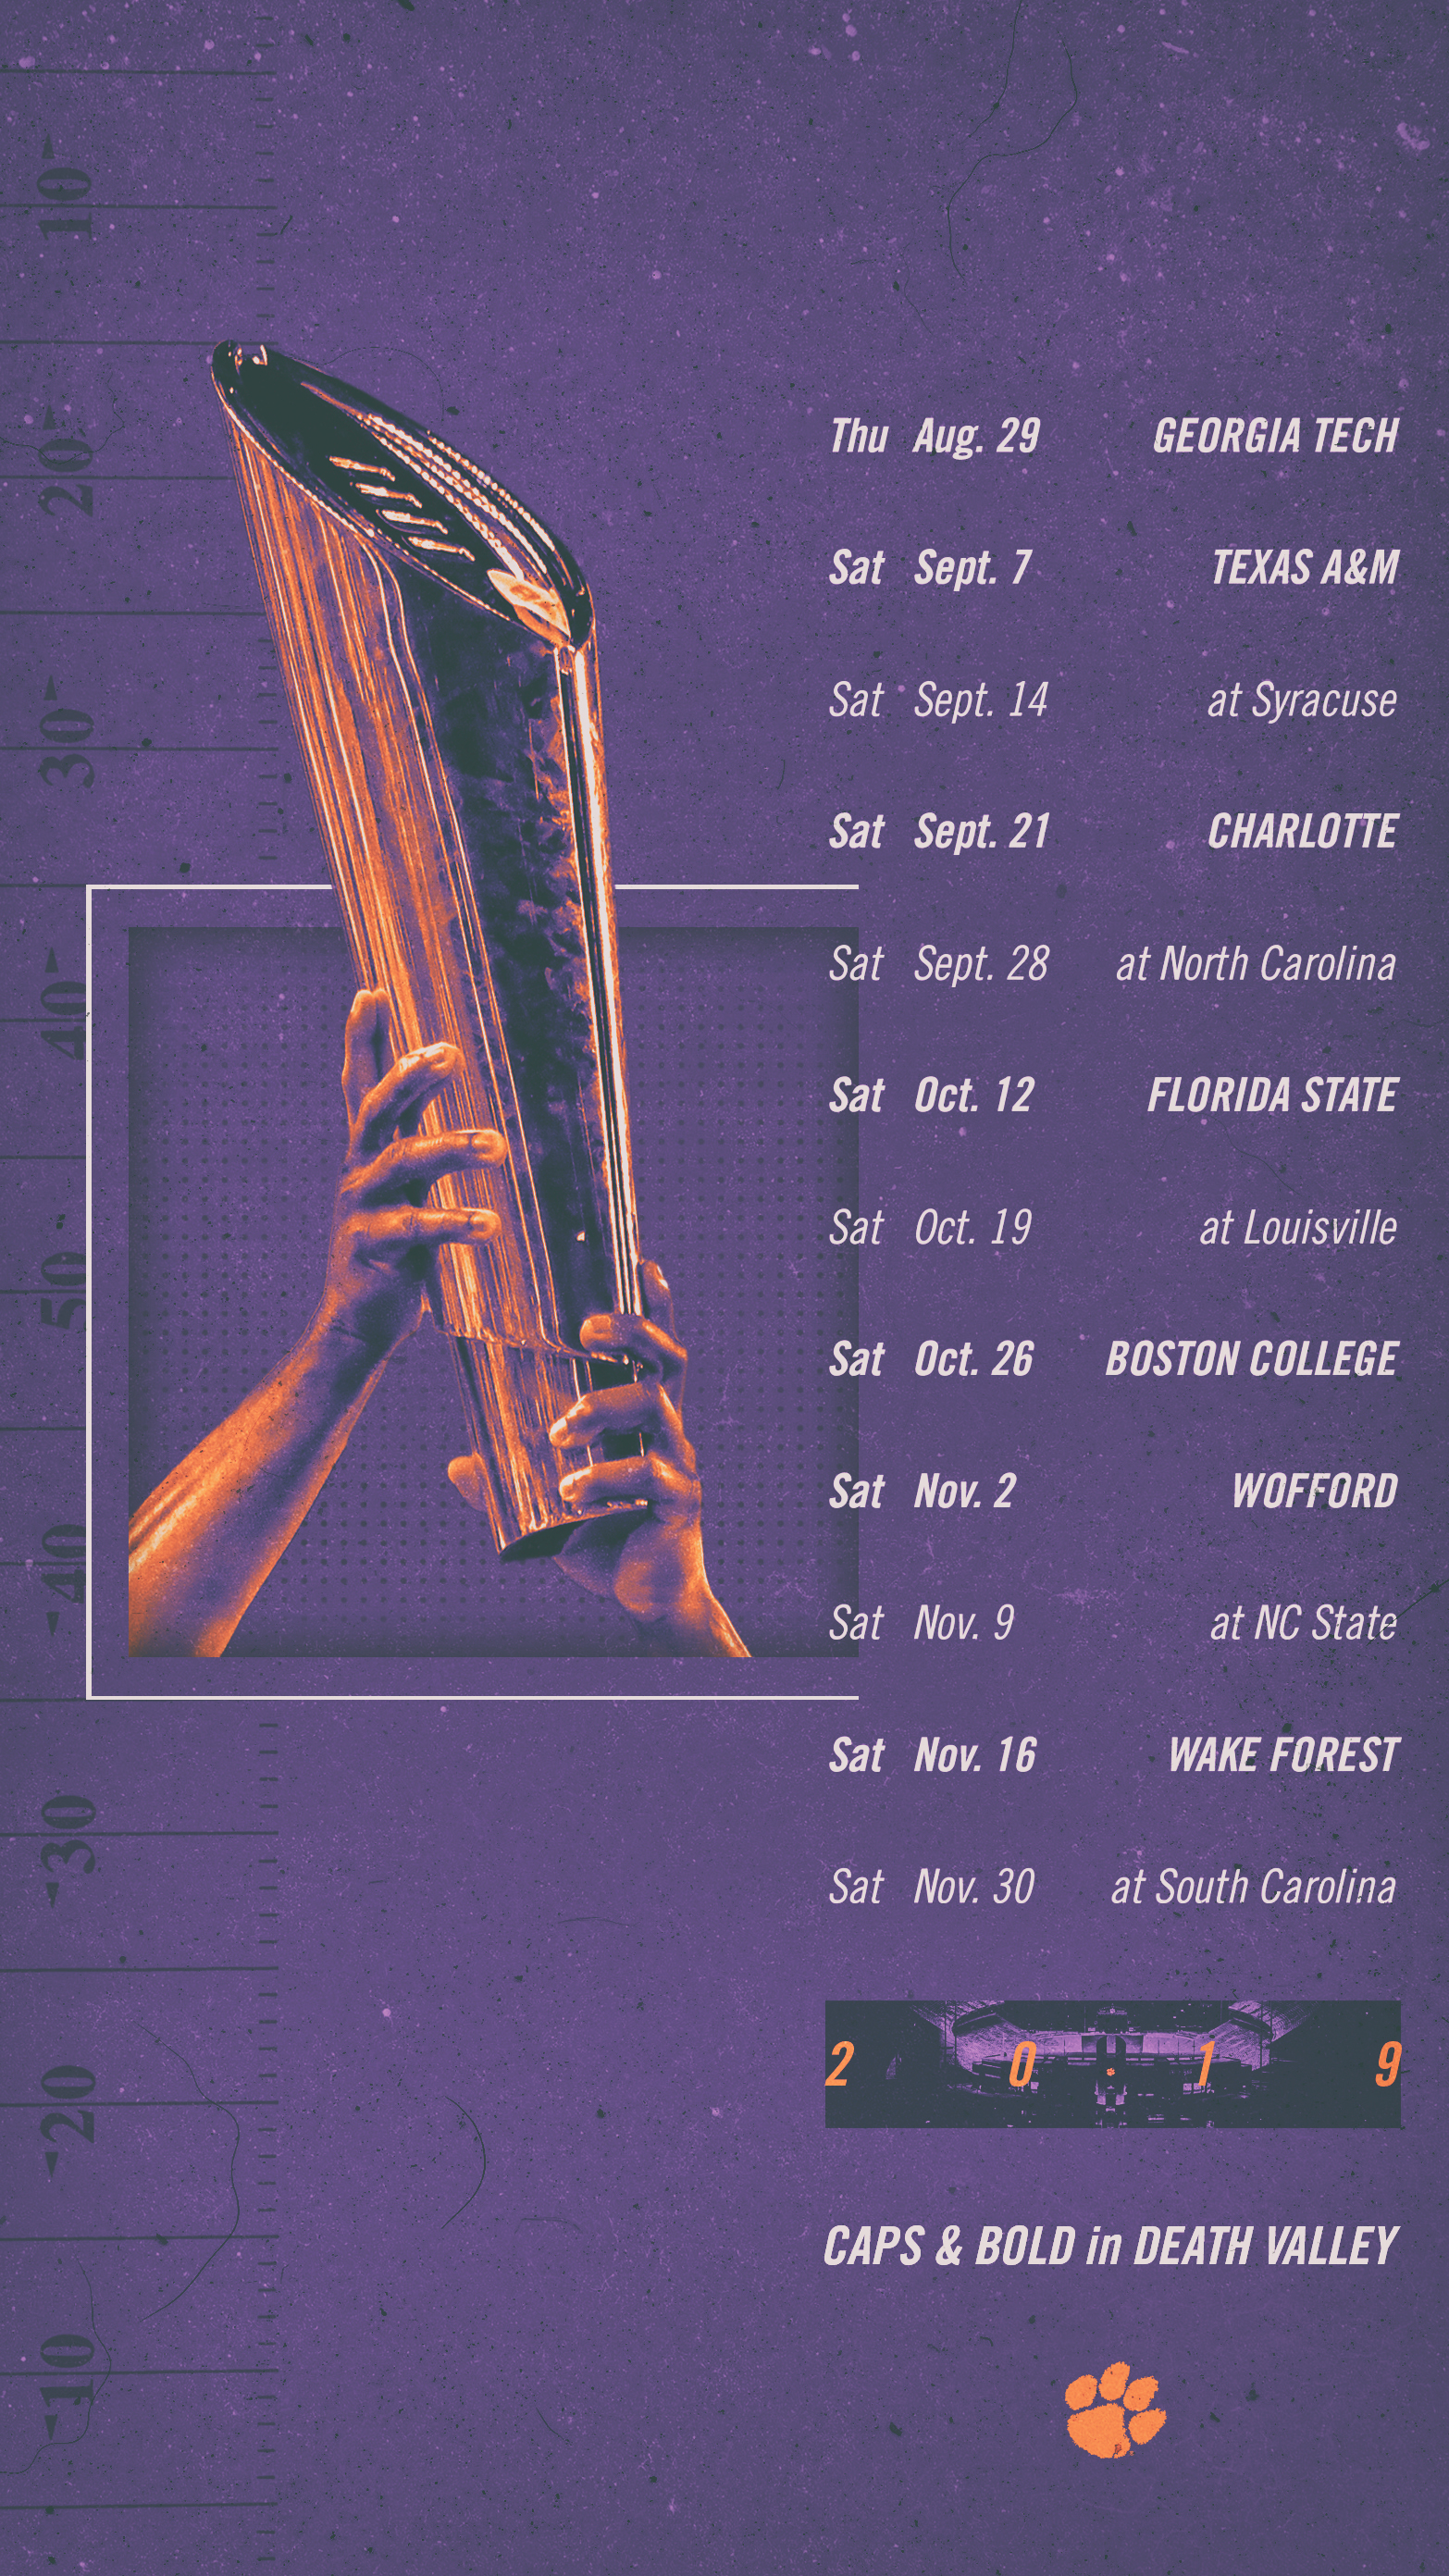 Clemson Calendar 2020 Clemson Announces 2019 Football Schedule – Clemson Tigers Official